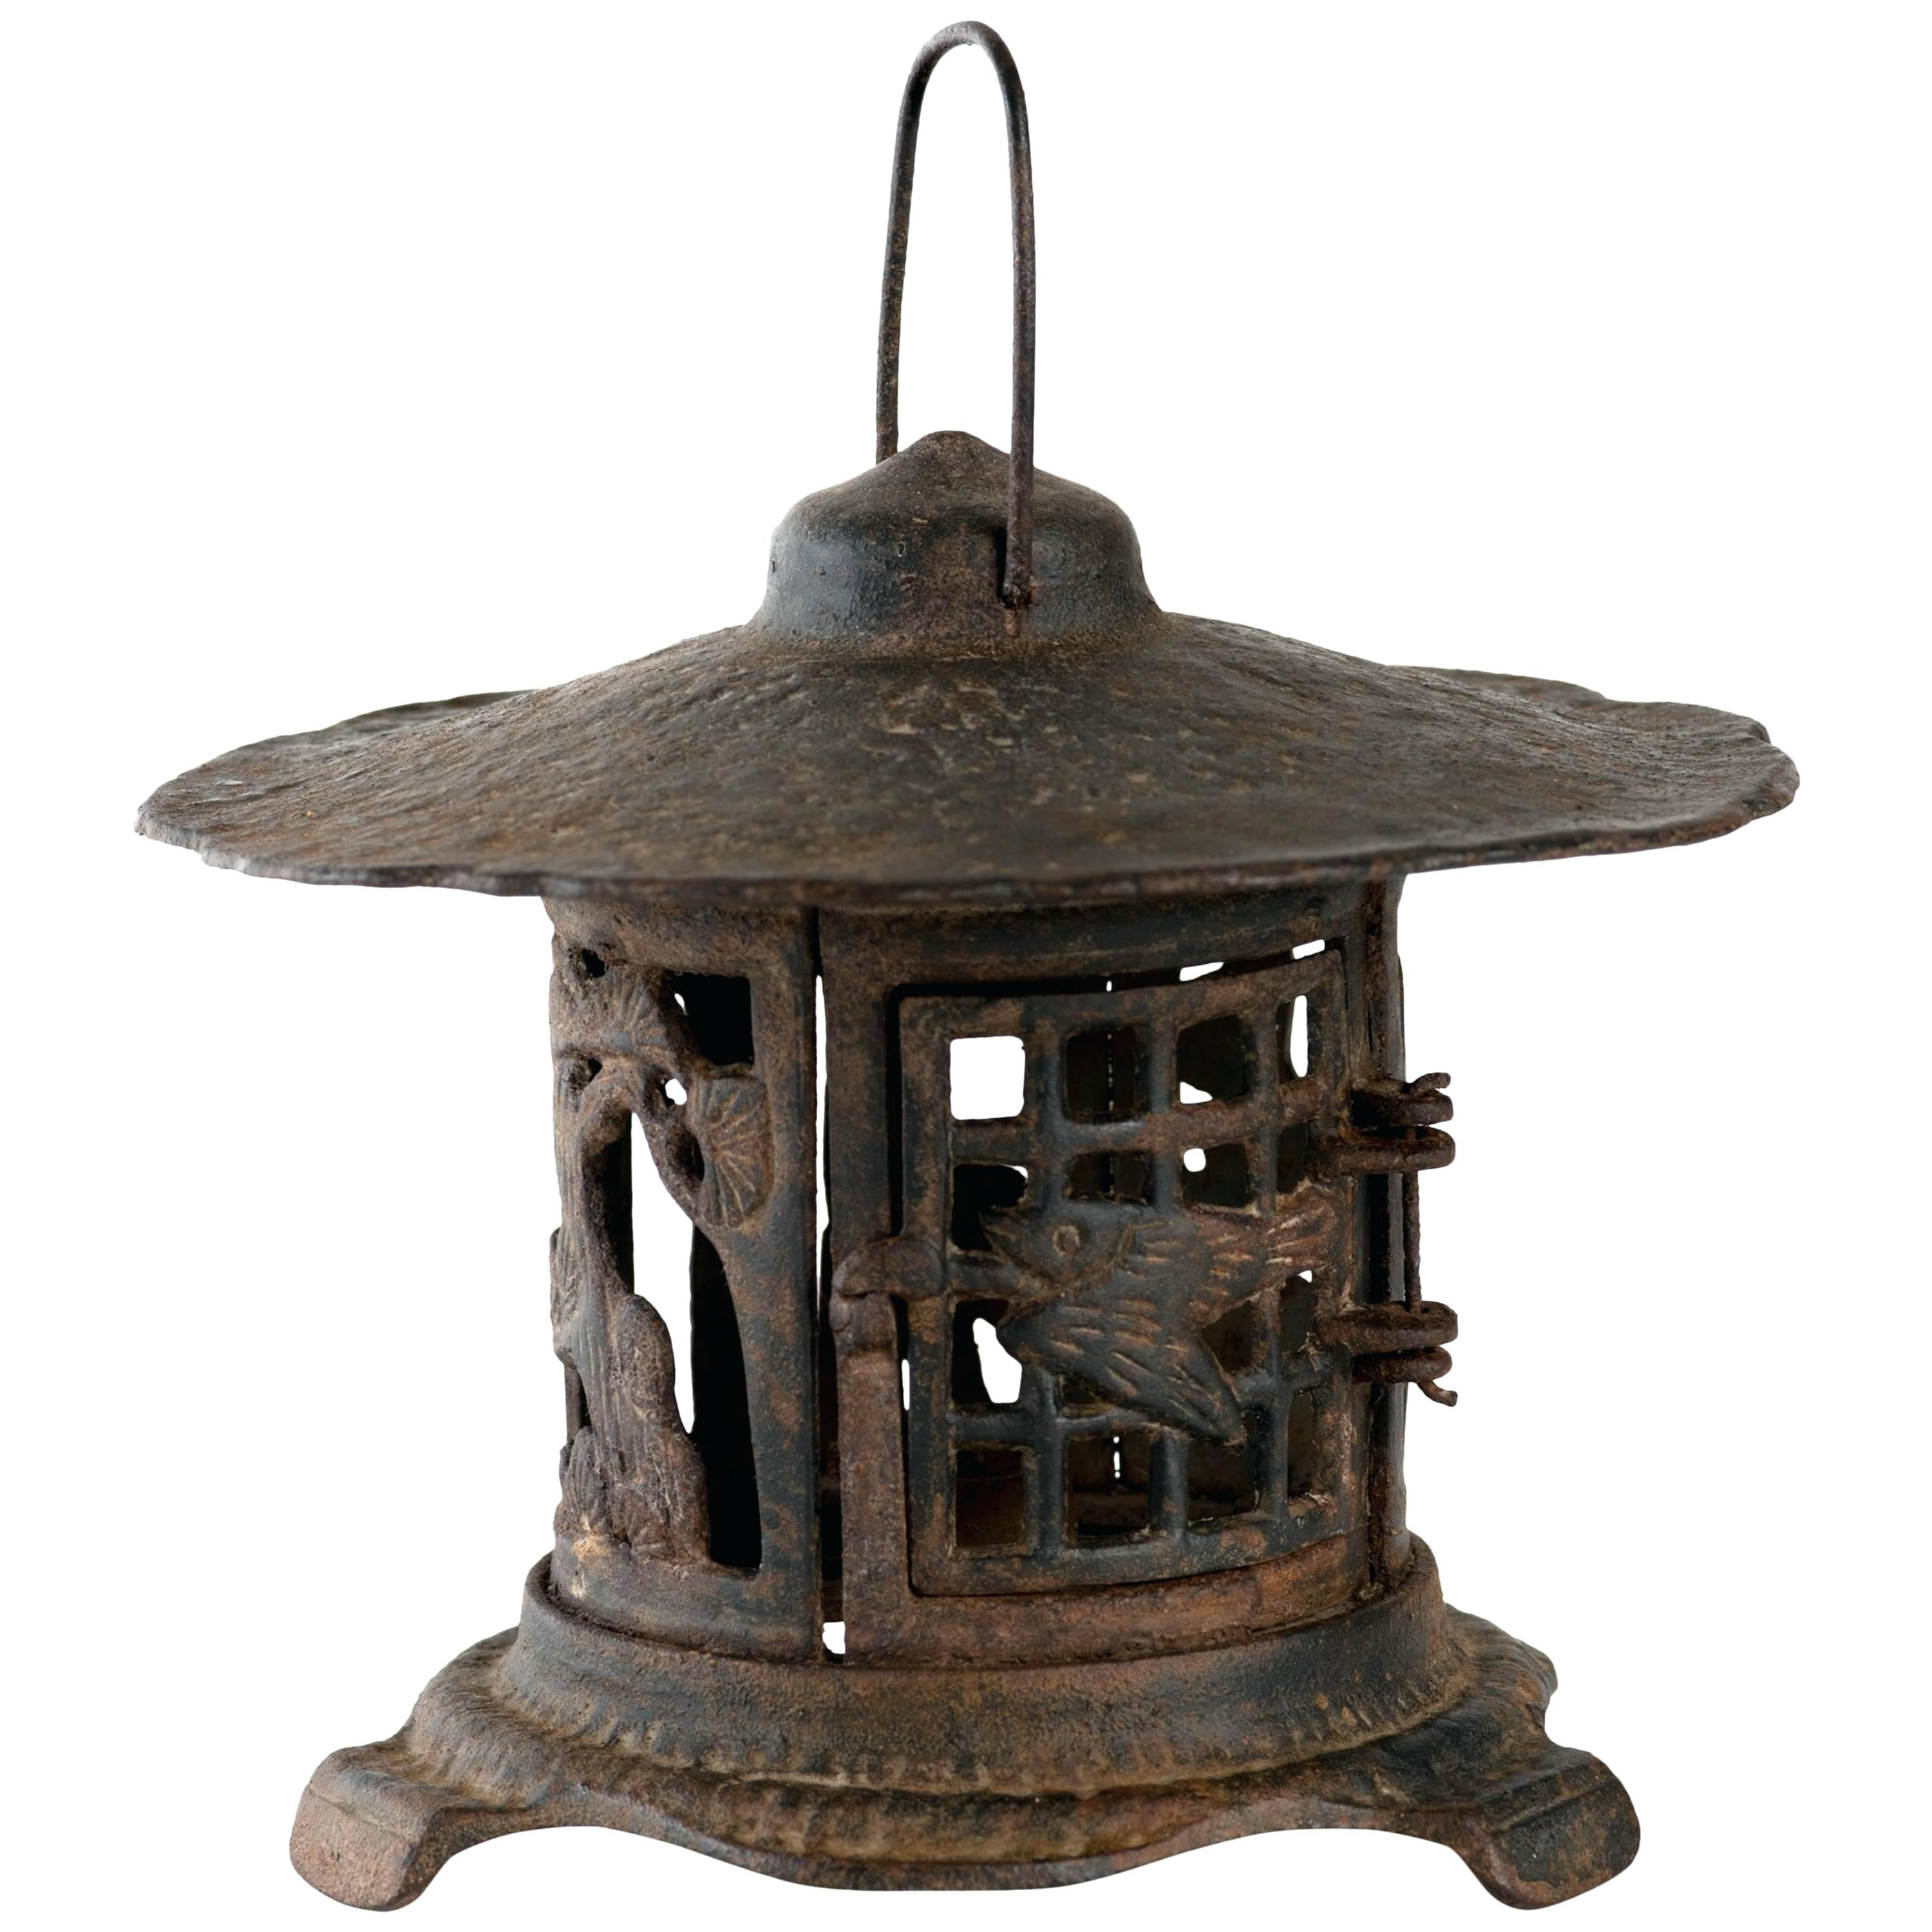 Japanese Garden Lanterns For Sale Garden Ornaments Garden Lanterns pertaining to Outdoor Japanese Lanterns For Sale (Image 8 of 20)